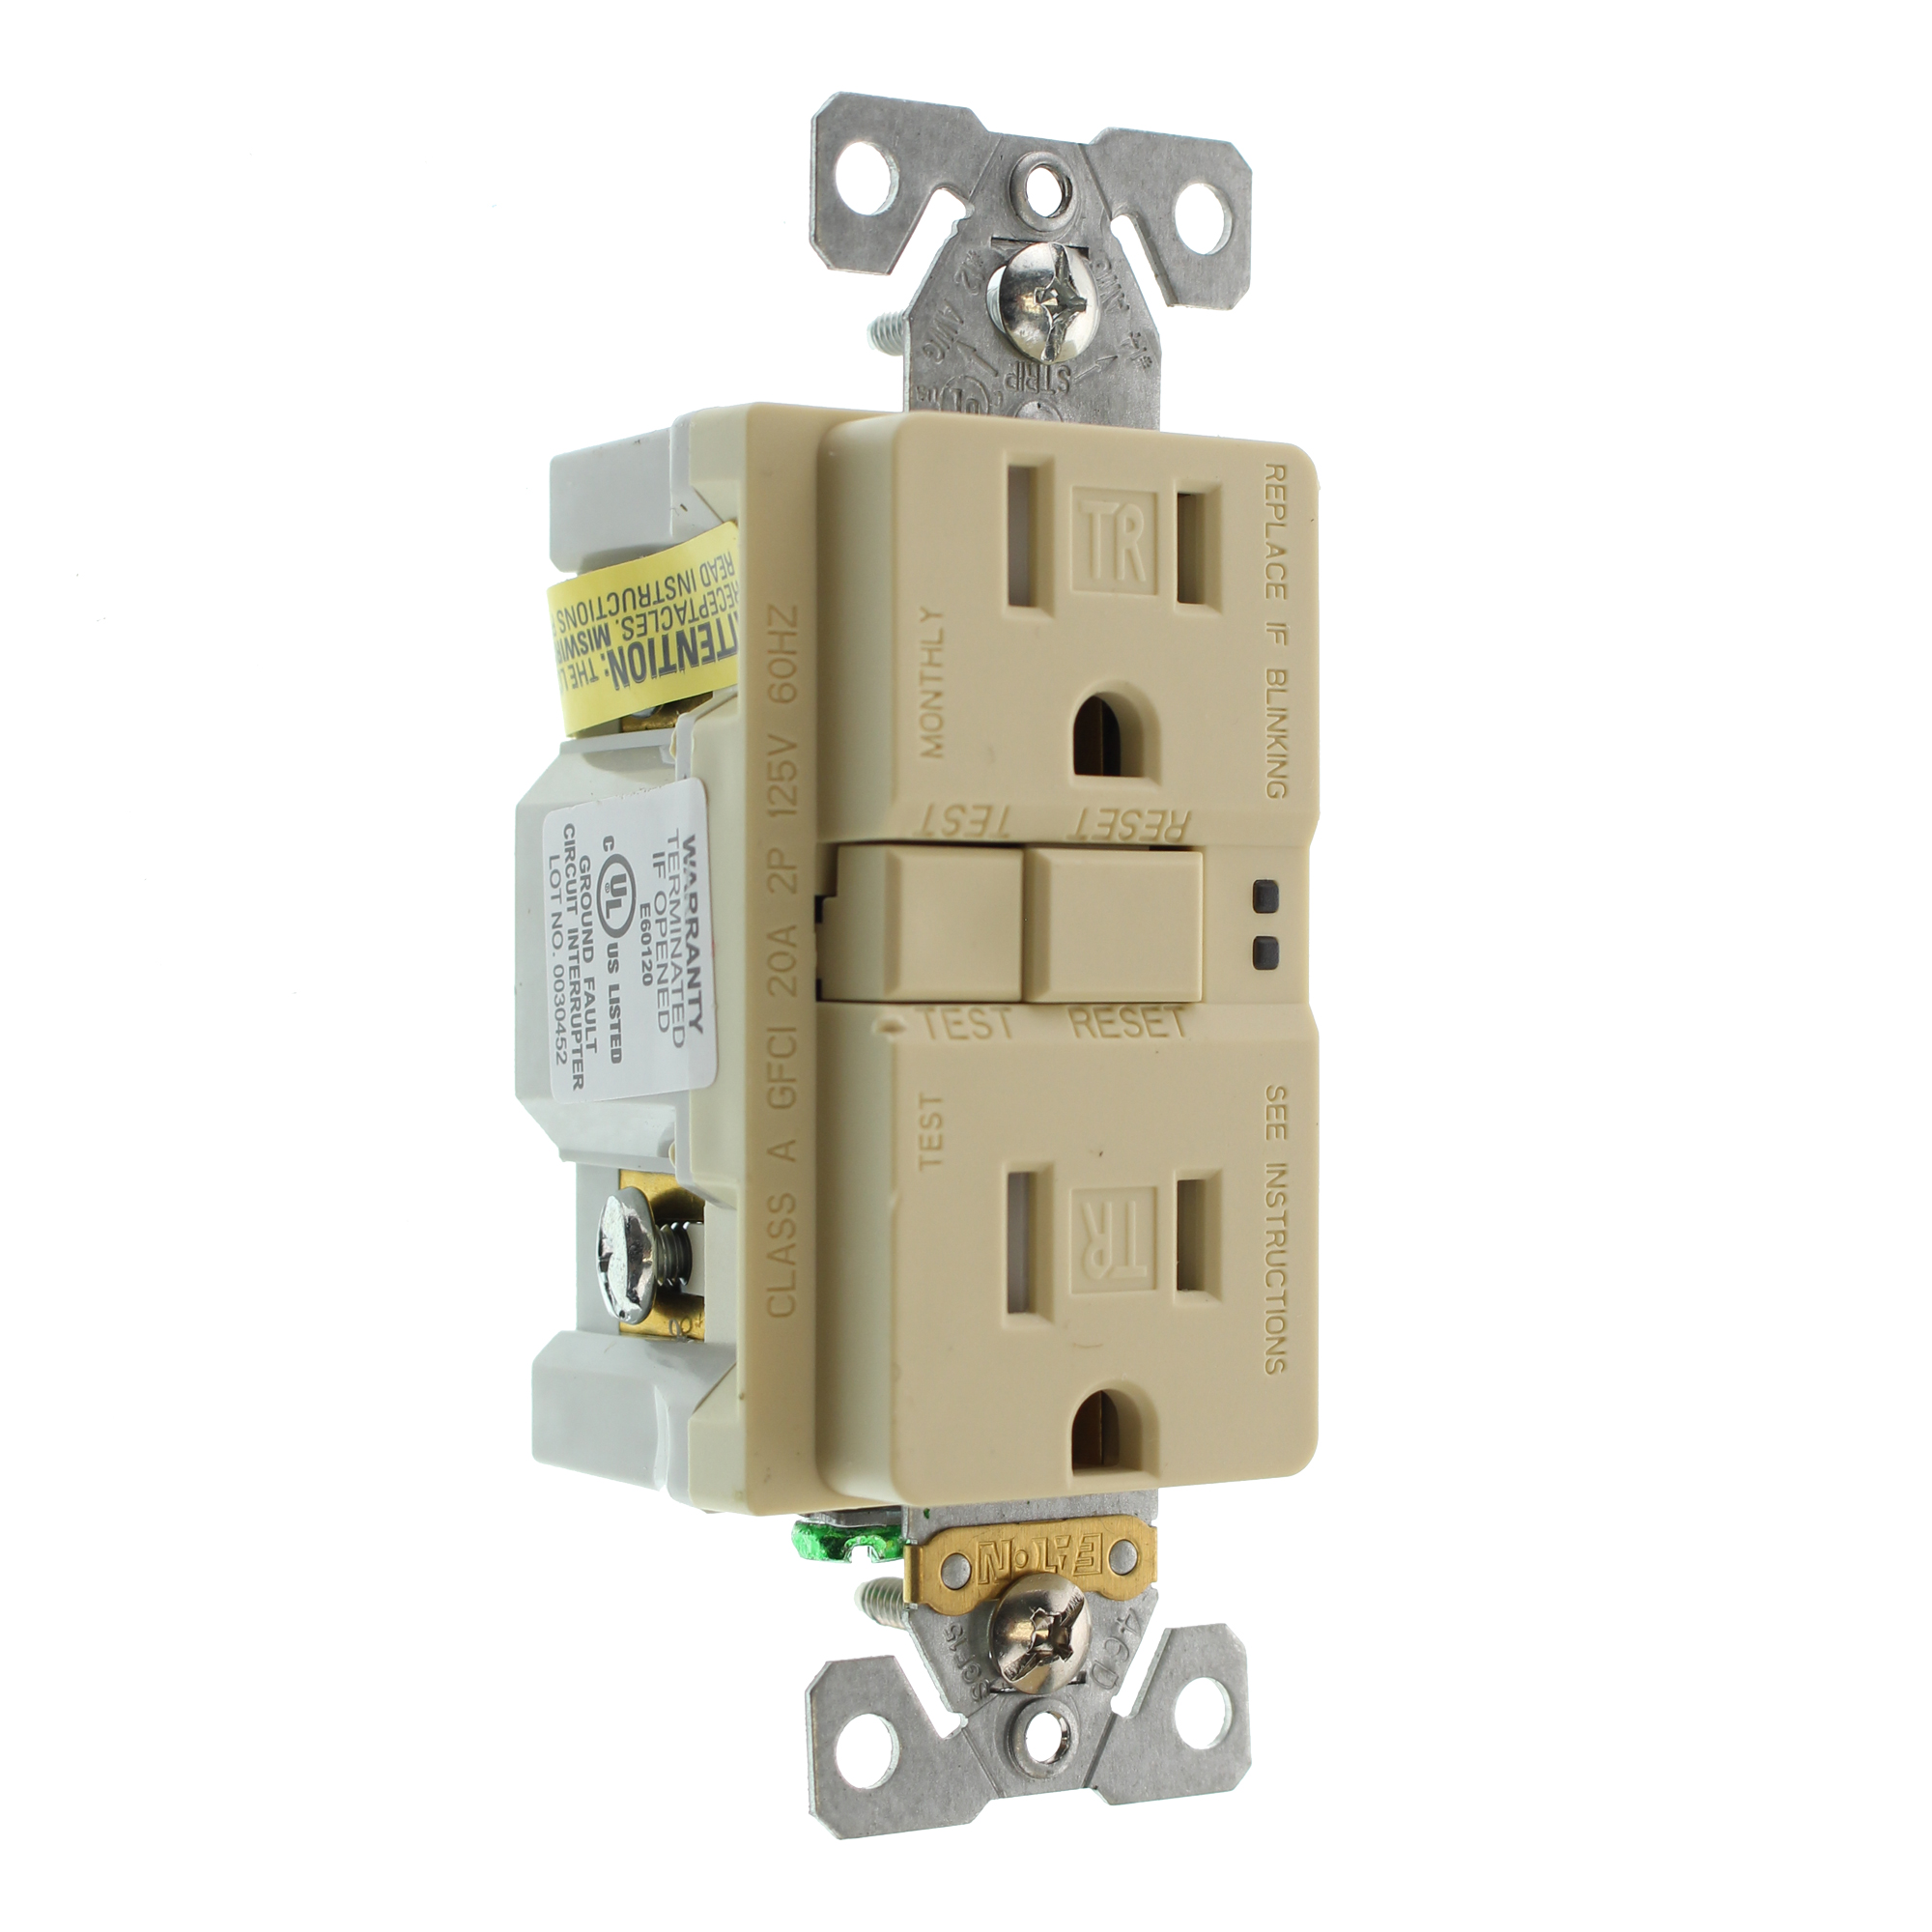 Groundfault Circuit Interrupter Outlet Eaton Cooper Trsgf15v 3 L Tamper Gfci Receptacle Tr 15a 125v This Auction Is For Ivory Pack